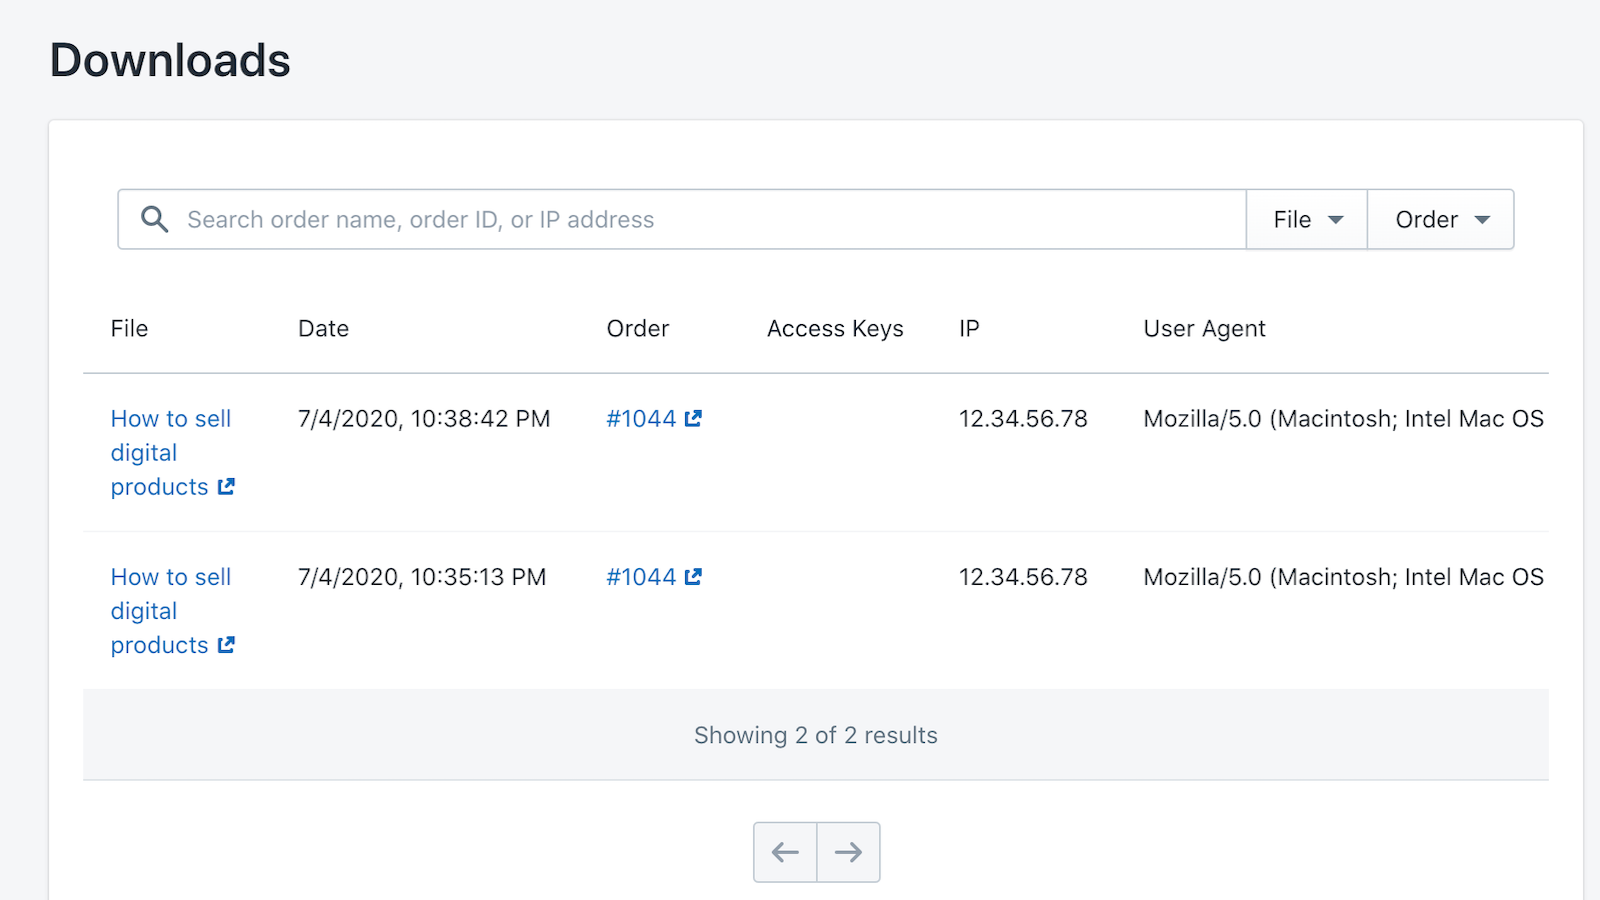 Order and Download Activity Reports